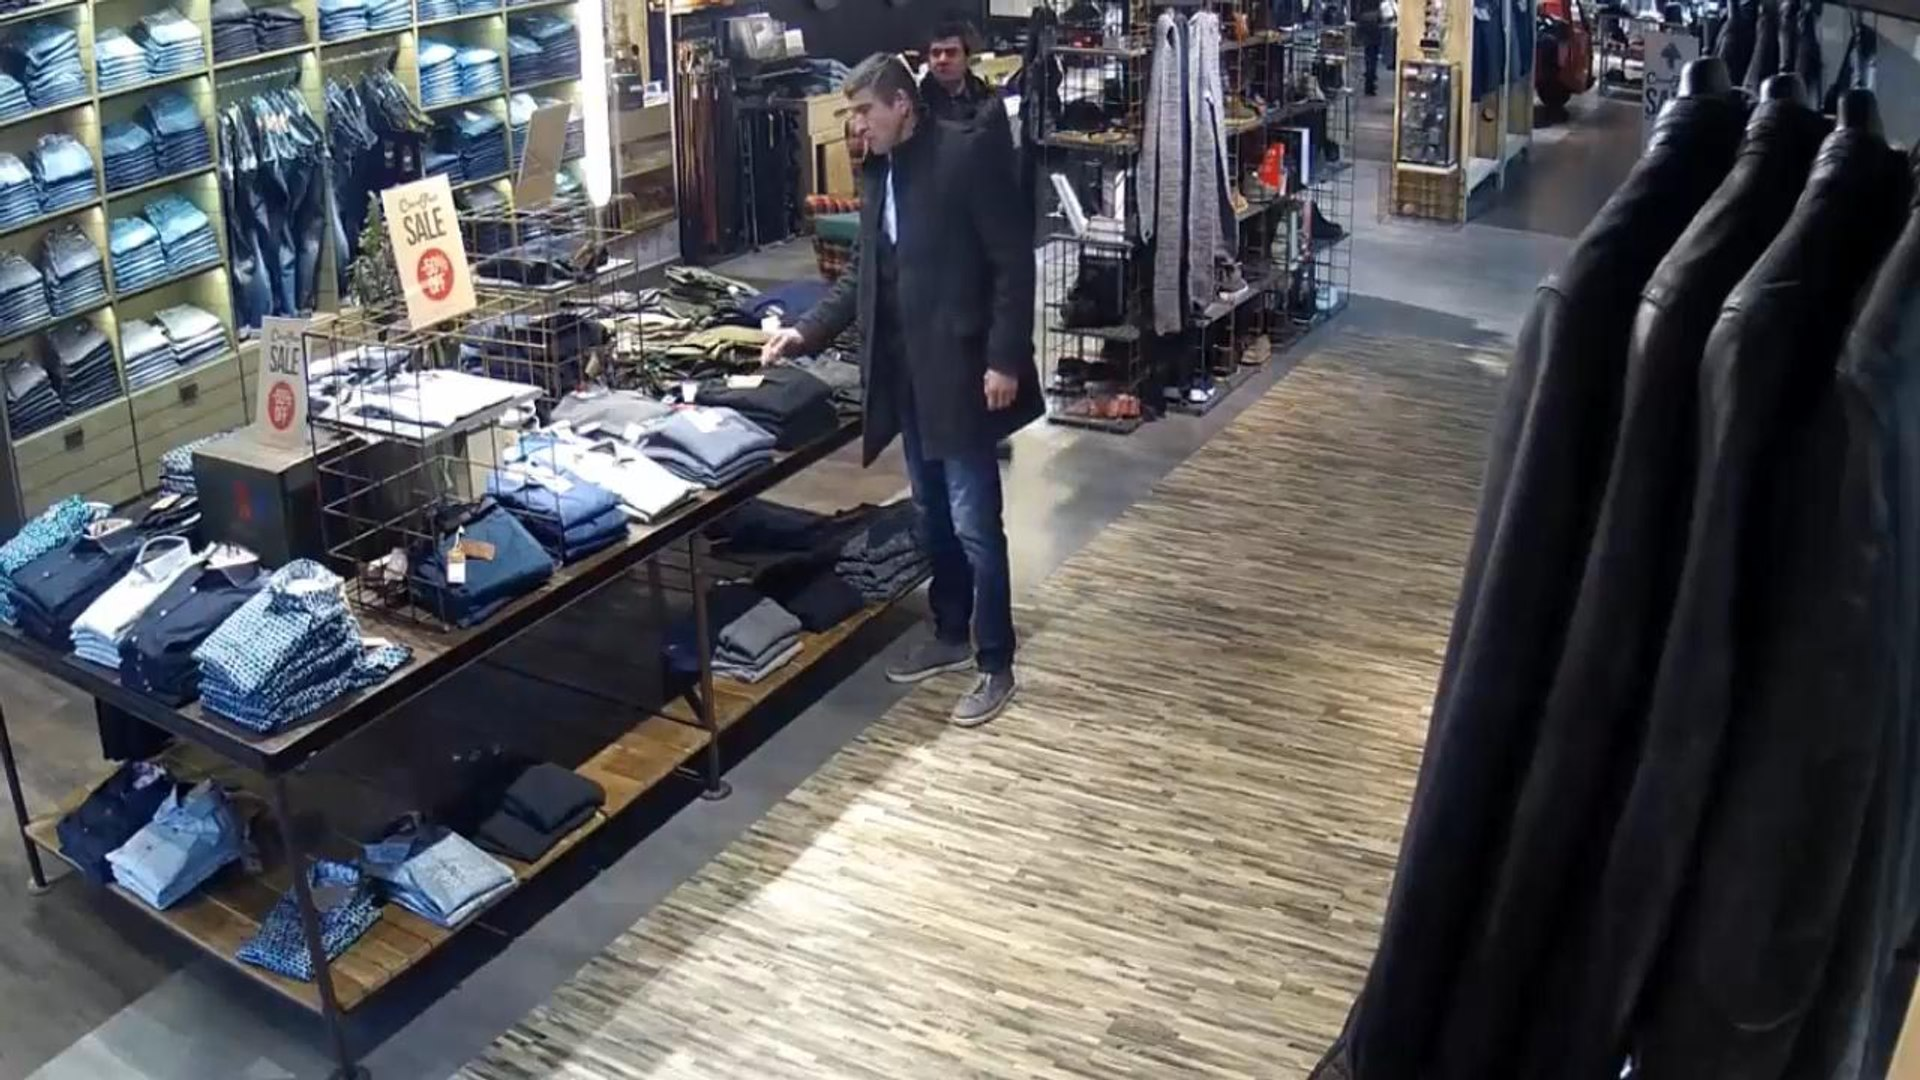 Shoplifting in clothes store